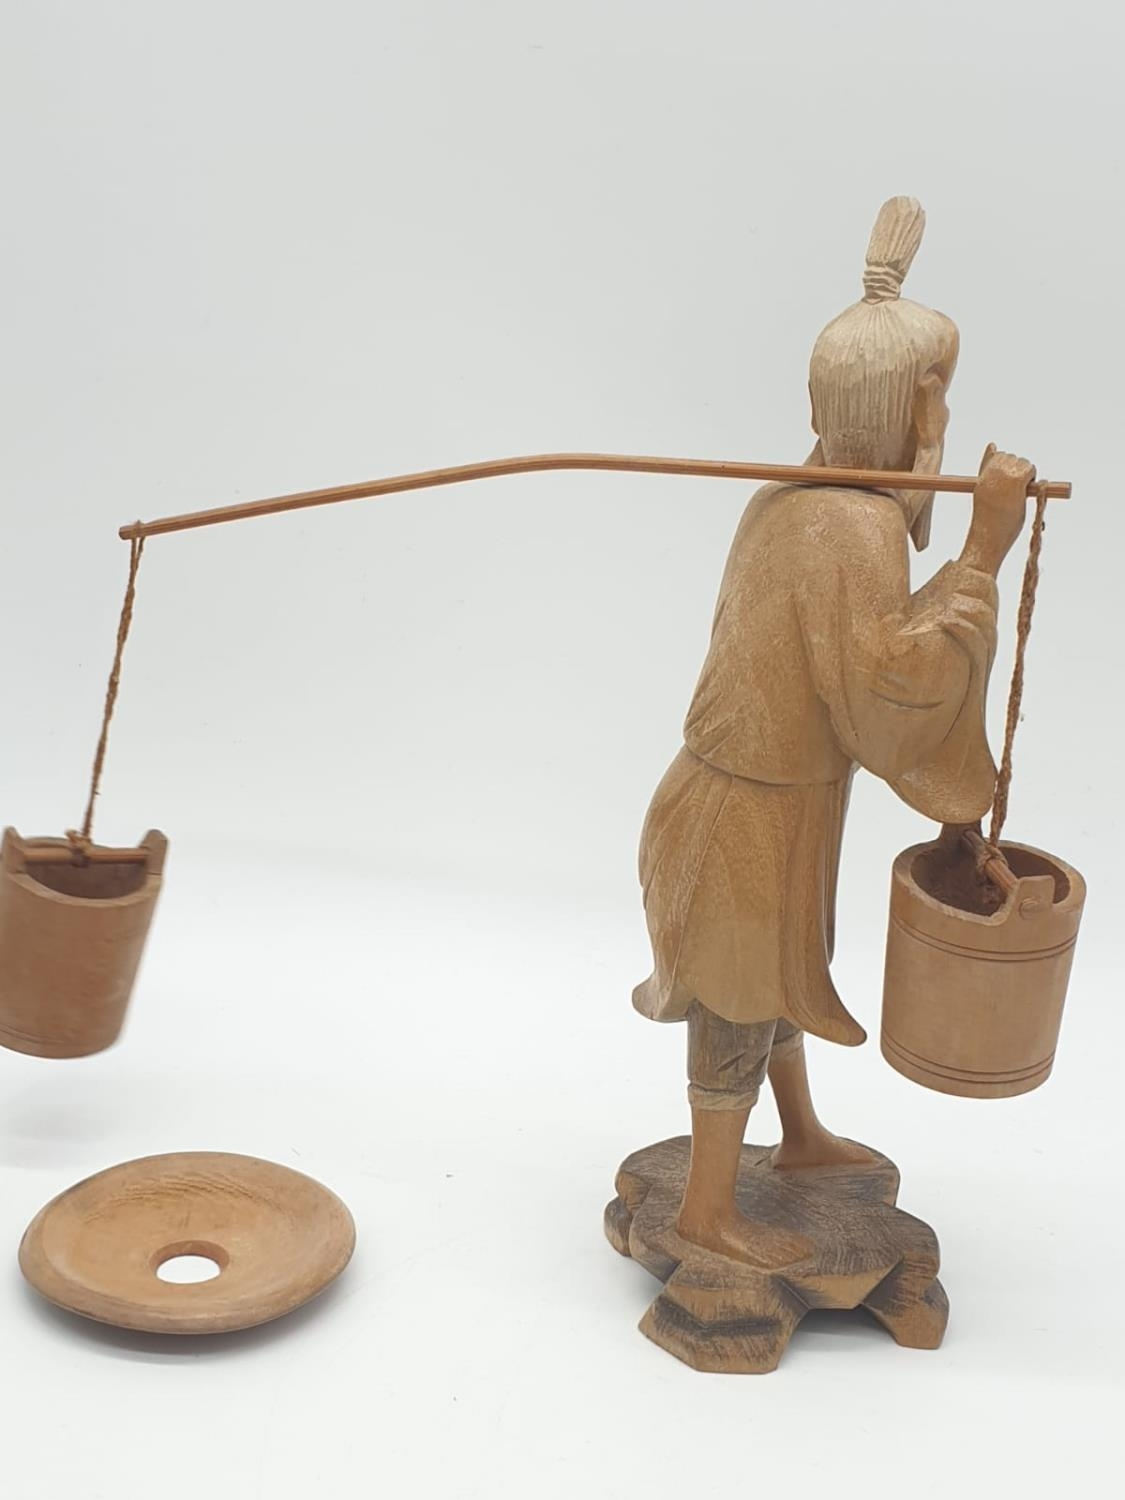 Hand carved wooden figure a Chinese pedlar. 20cm tall. - Image 5 of 7